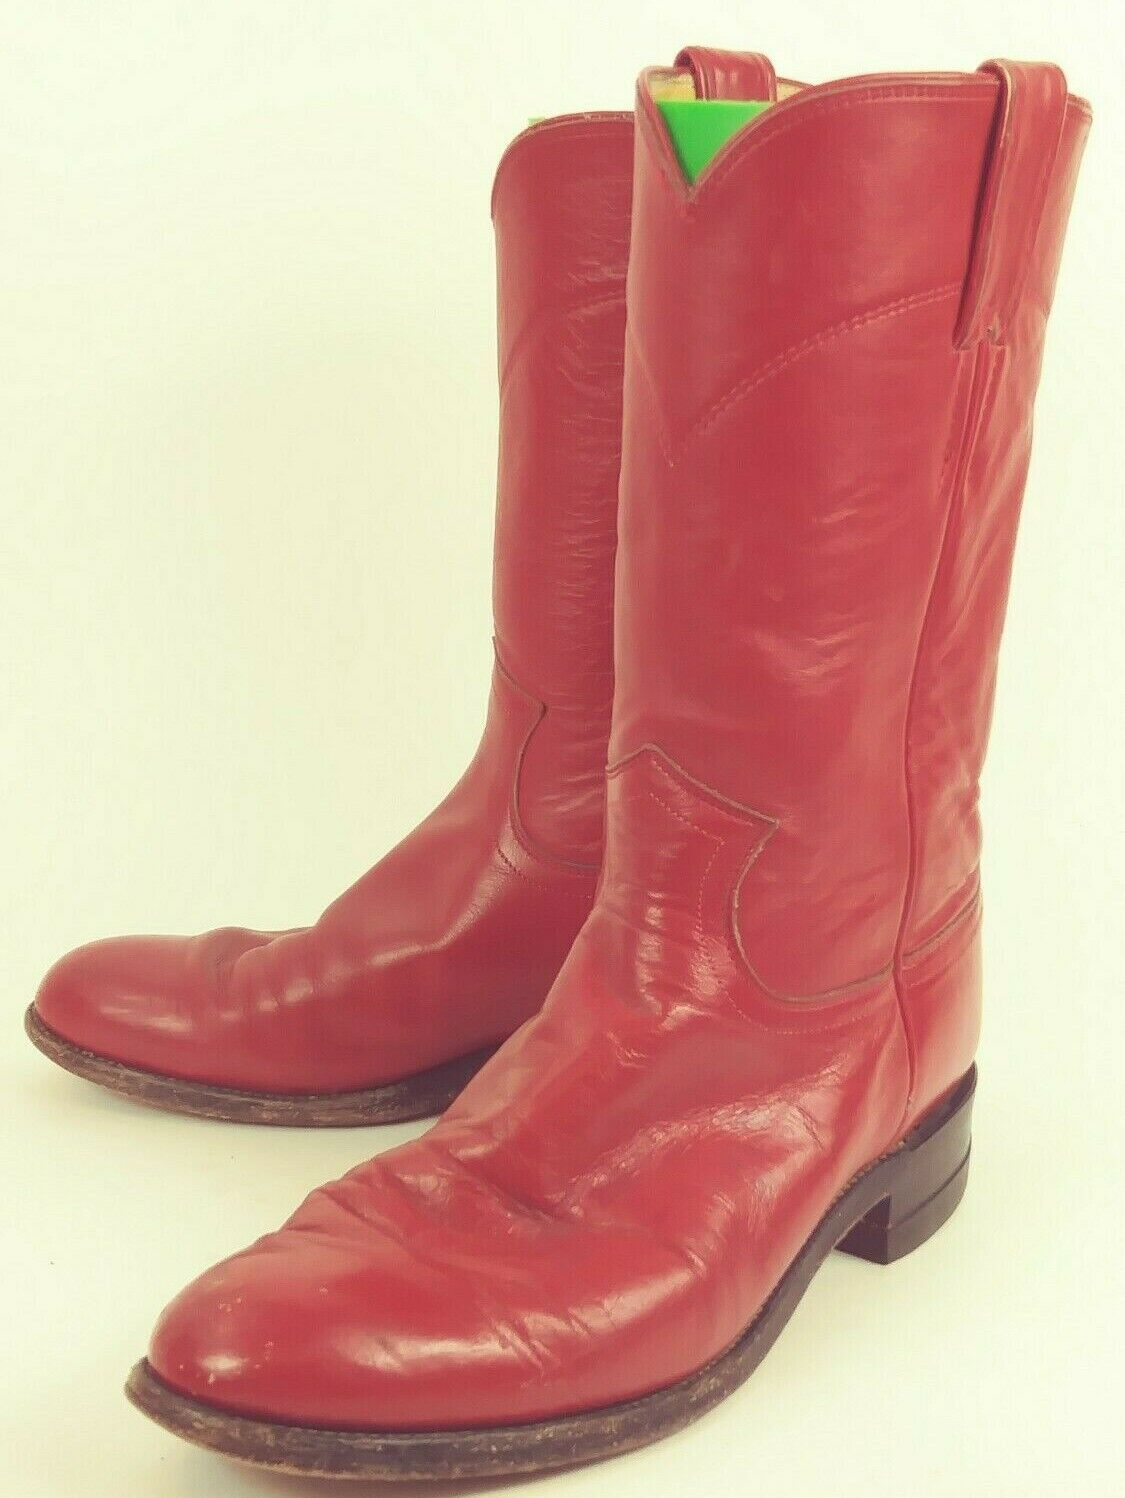 Vintage Justin 3055 Womenss Boots Cowboy Western US 7 B Red Leather USA